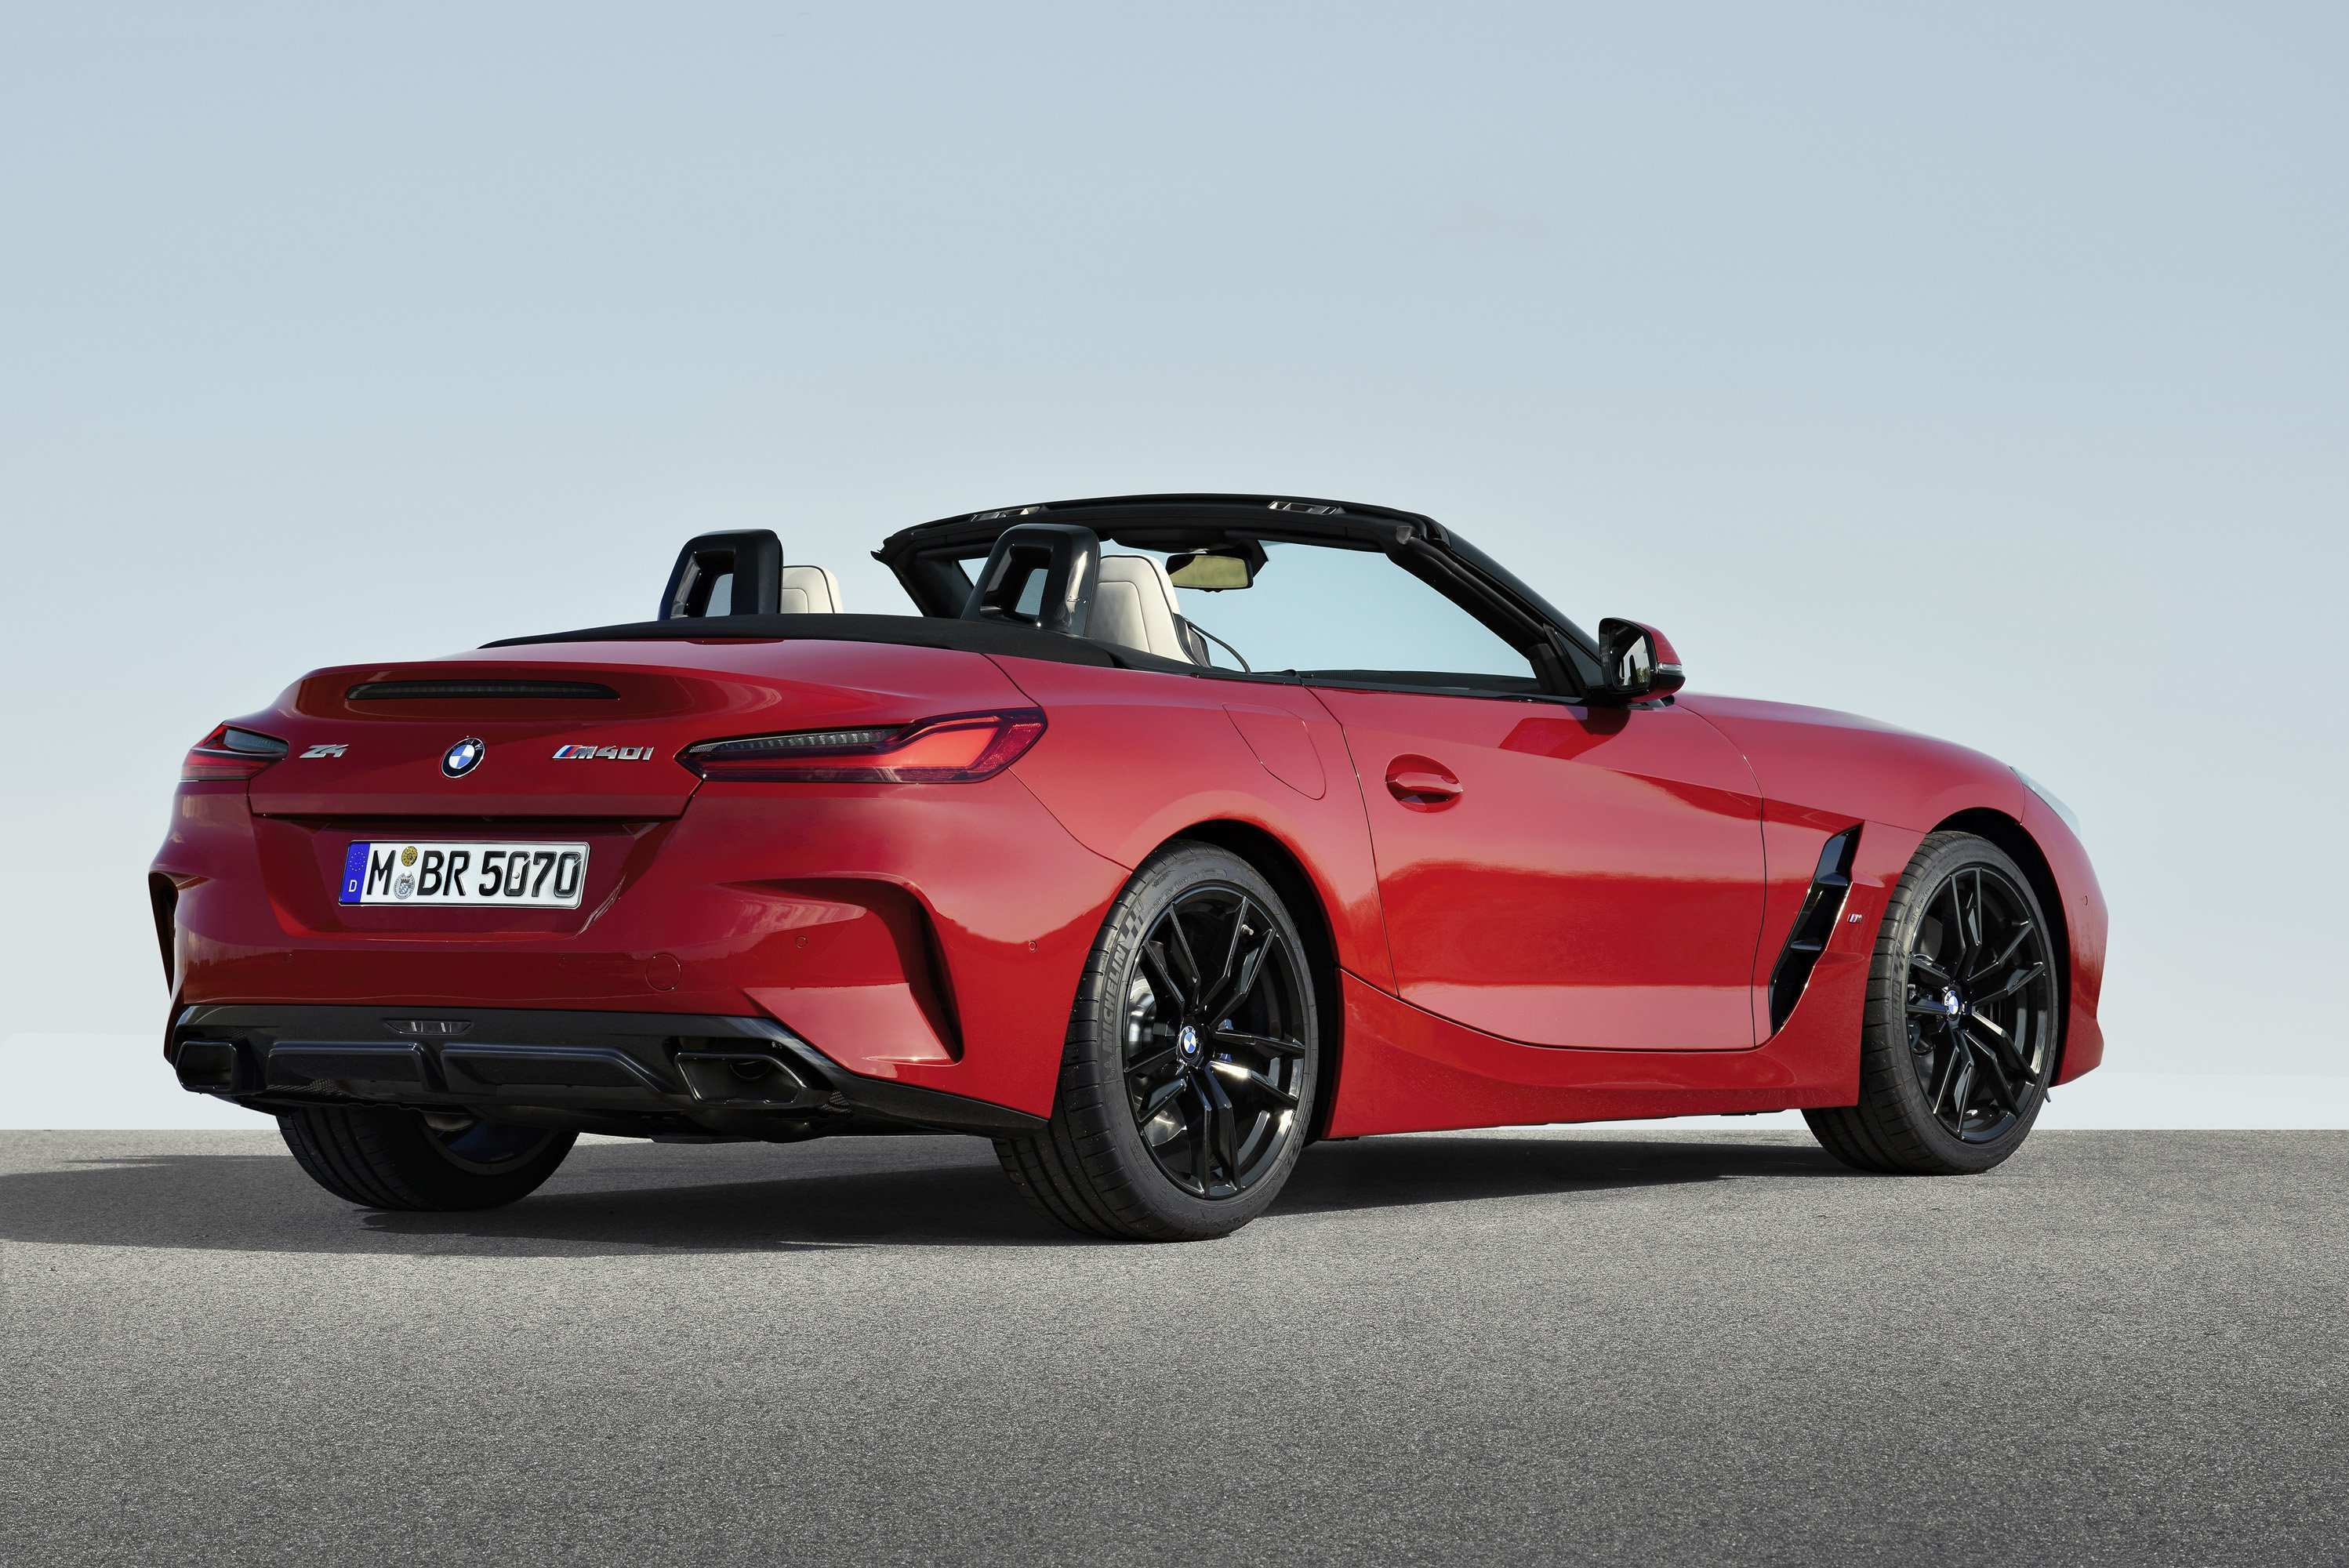 40 All New The Bmw 2019 Z4 Dimensions Specs And Review Price and Review for The Bmw 2019 Z4 Dimensions Specs And Review